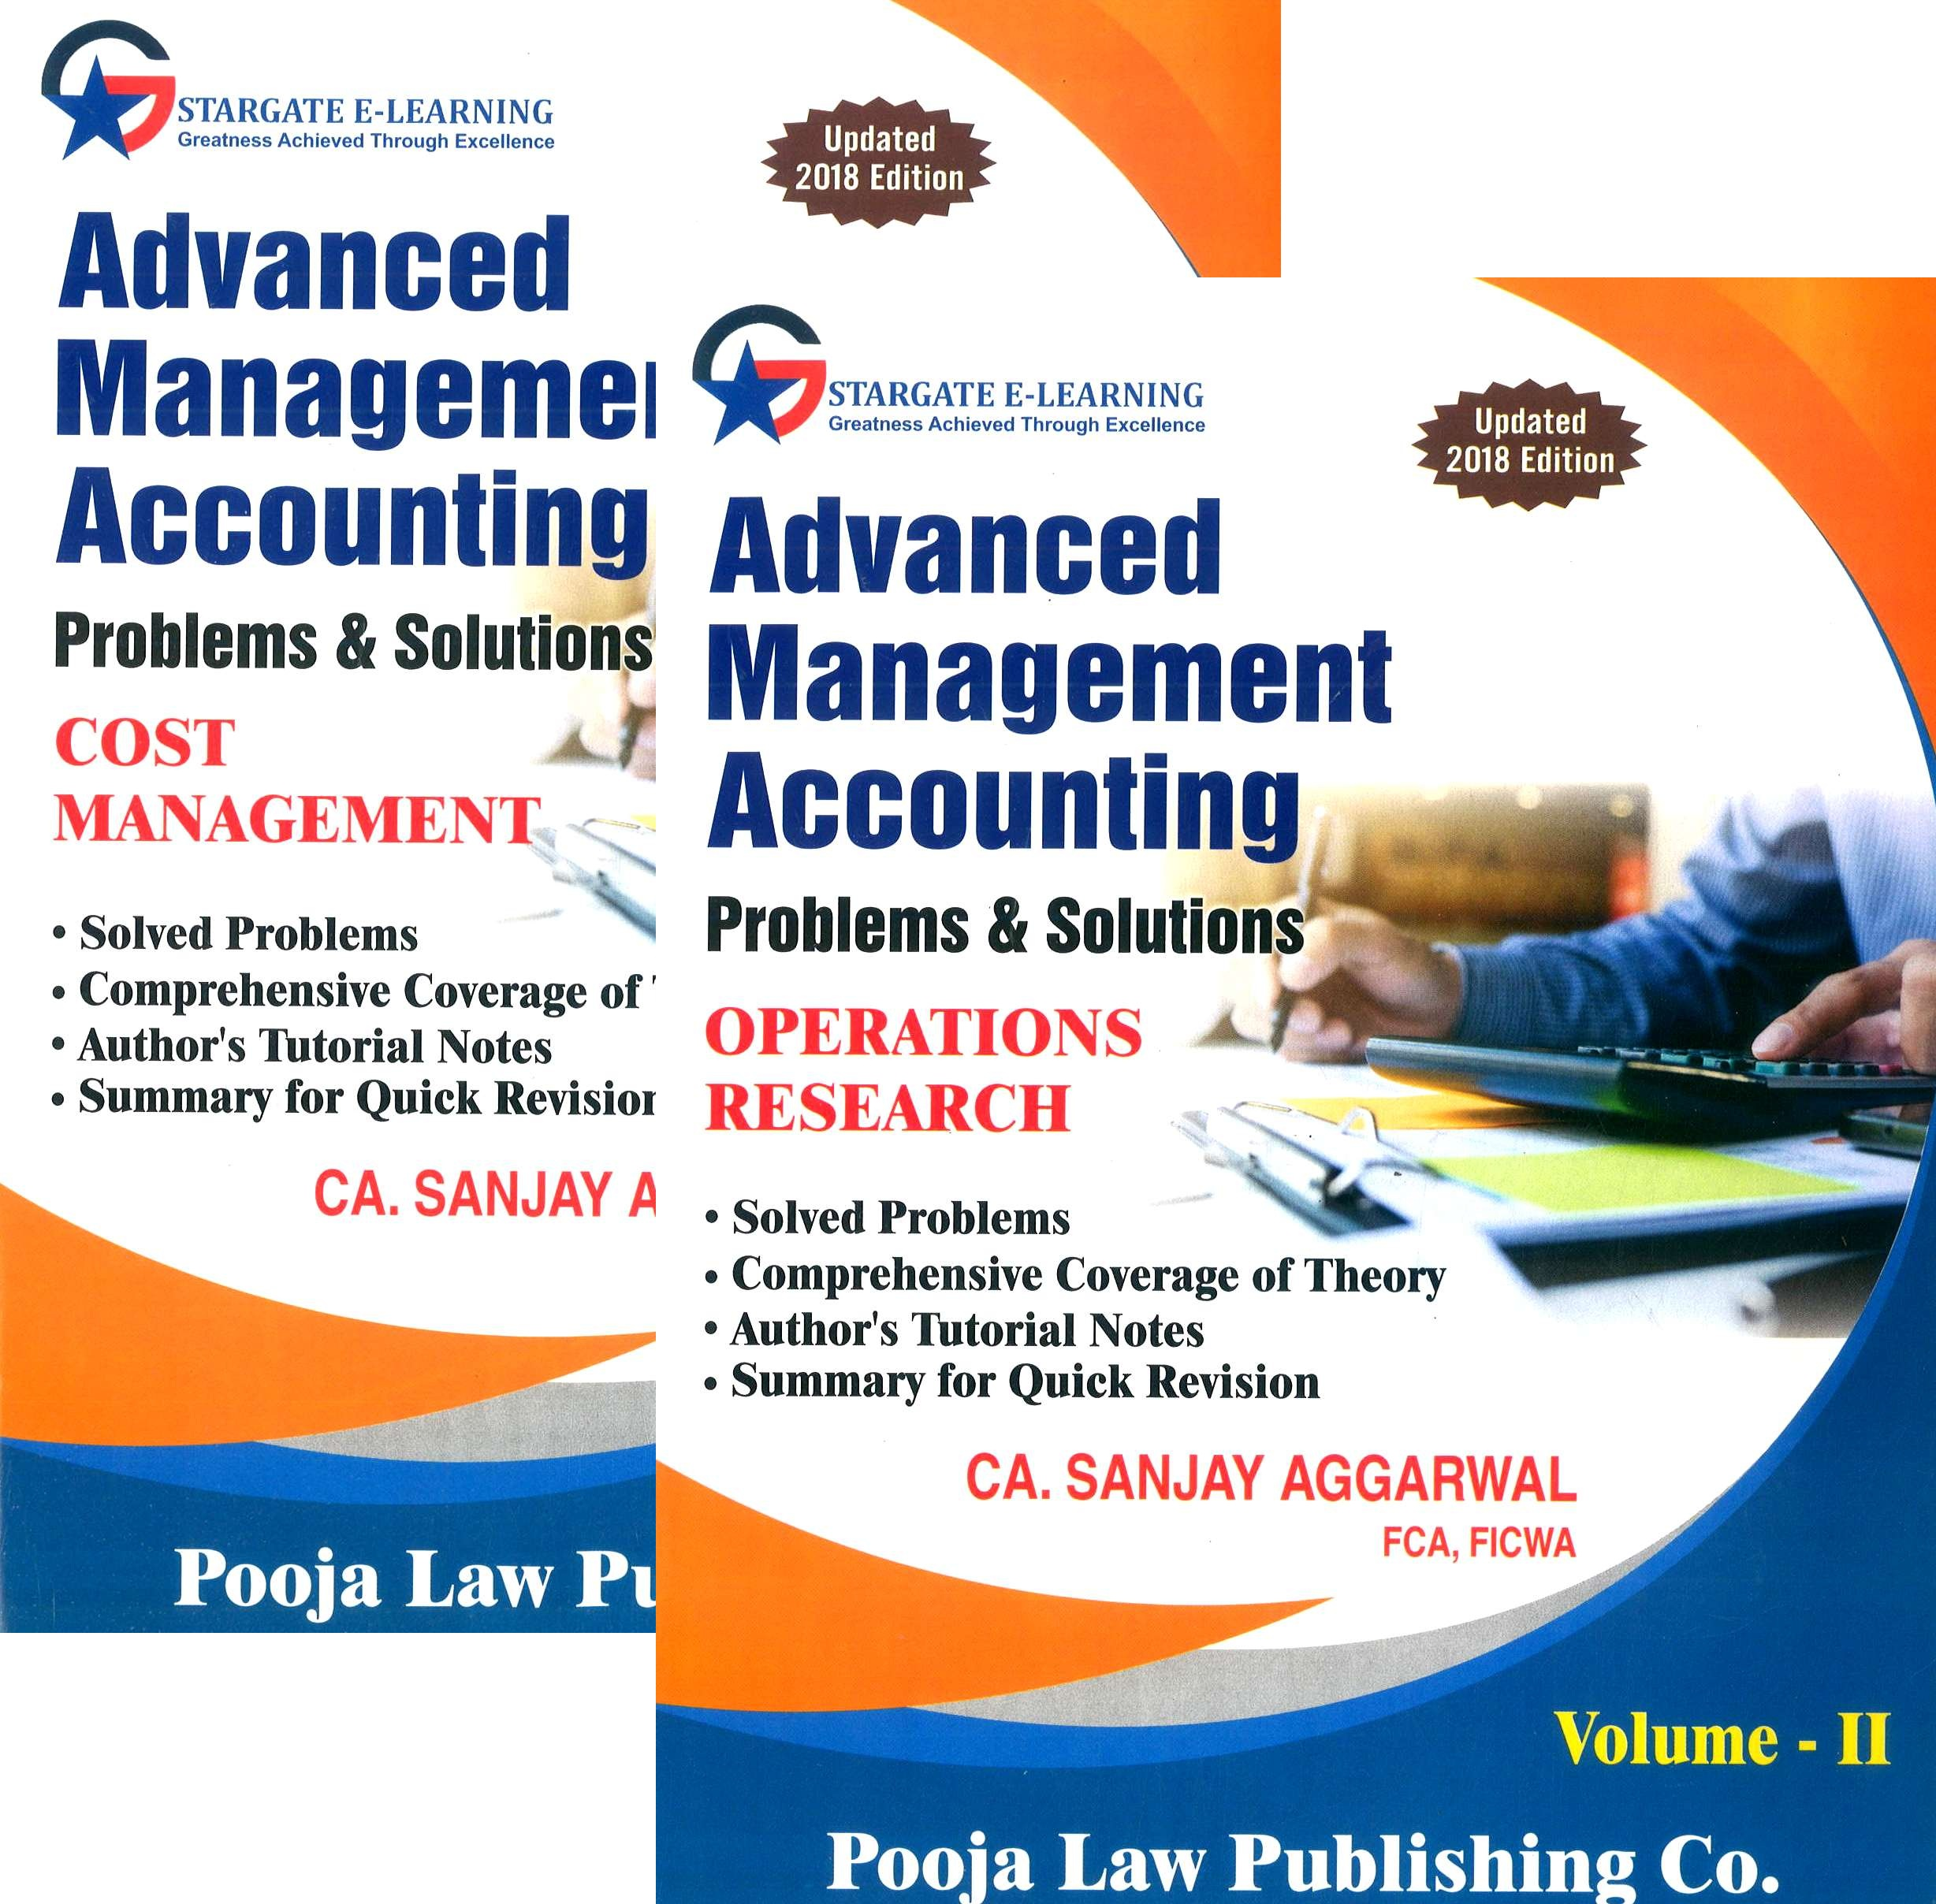 Pooja Law House Advanced Management Accounting (Cost Management and Operations Research)Problems & Solutions ( Sets of 2 volumes )for CA Final By Sanjay Aggarwal Applicable for Nov 2018 Exam (Pooja Law House Publishing) Edition  2018